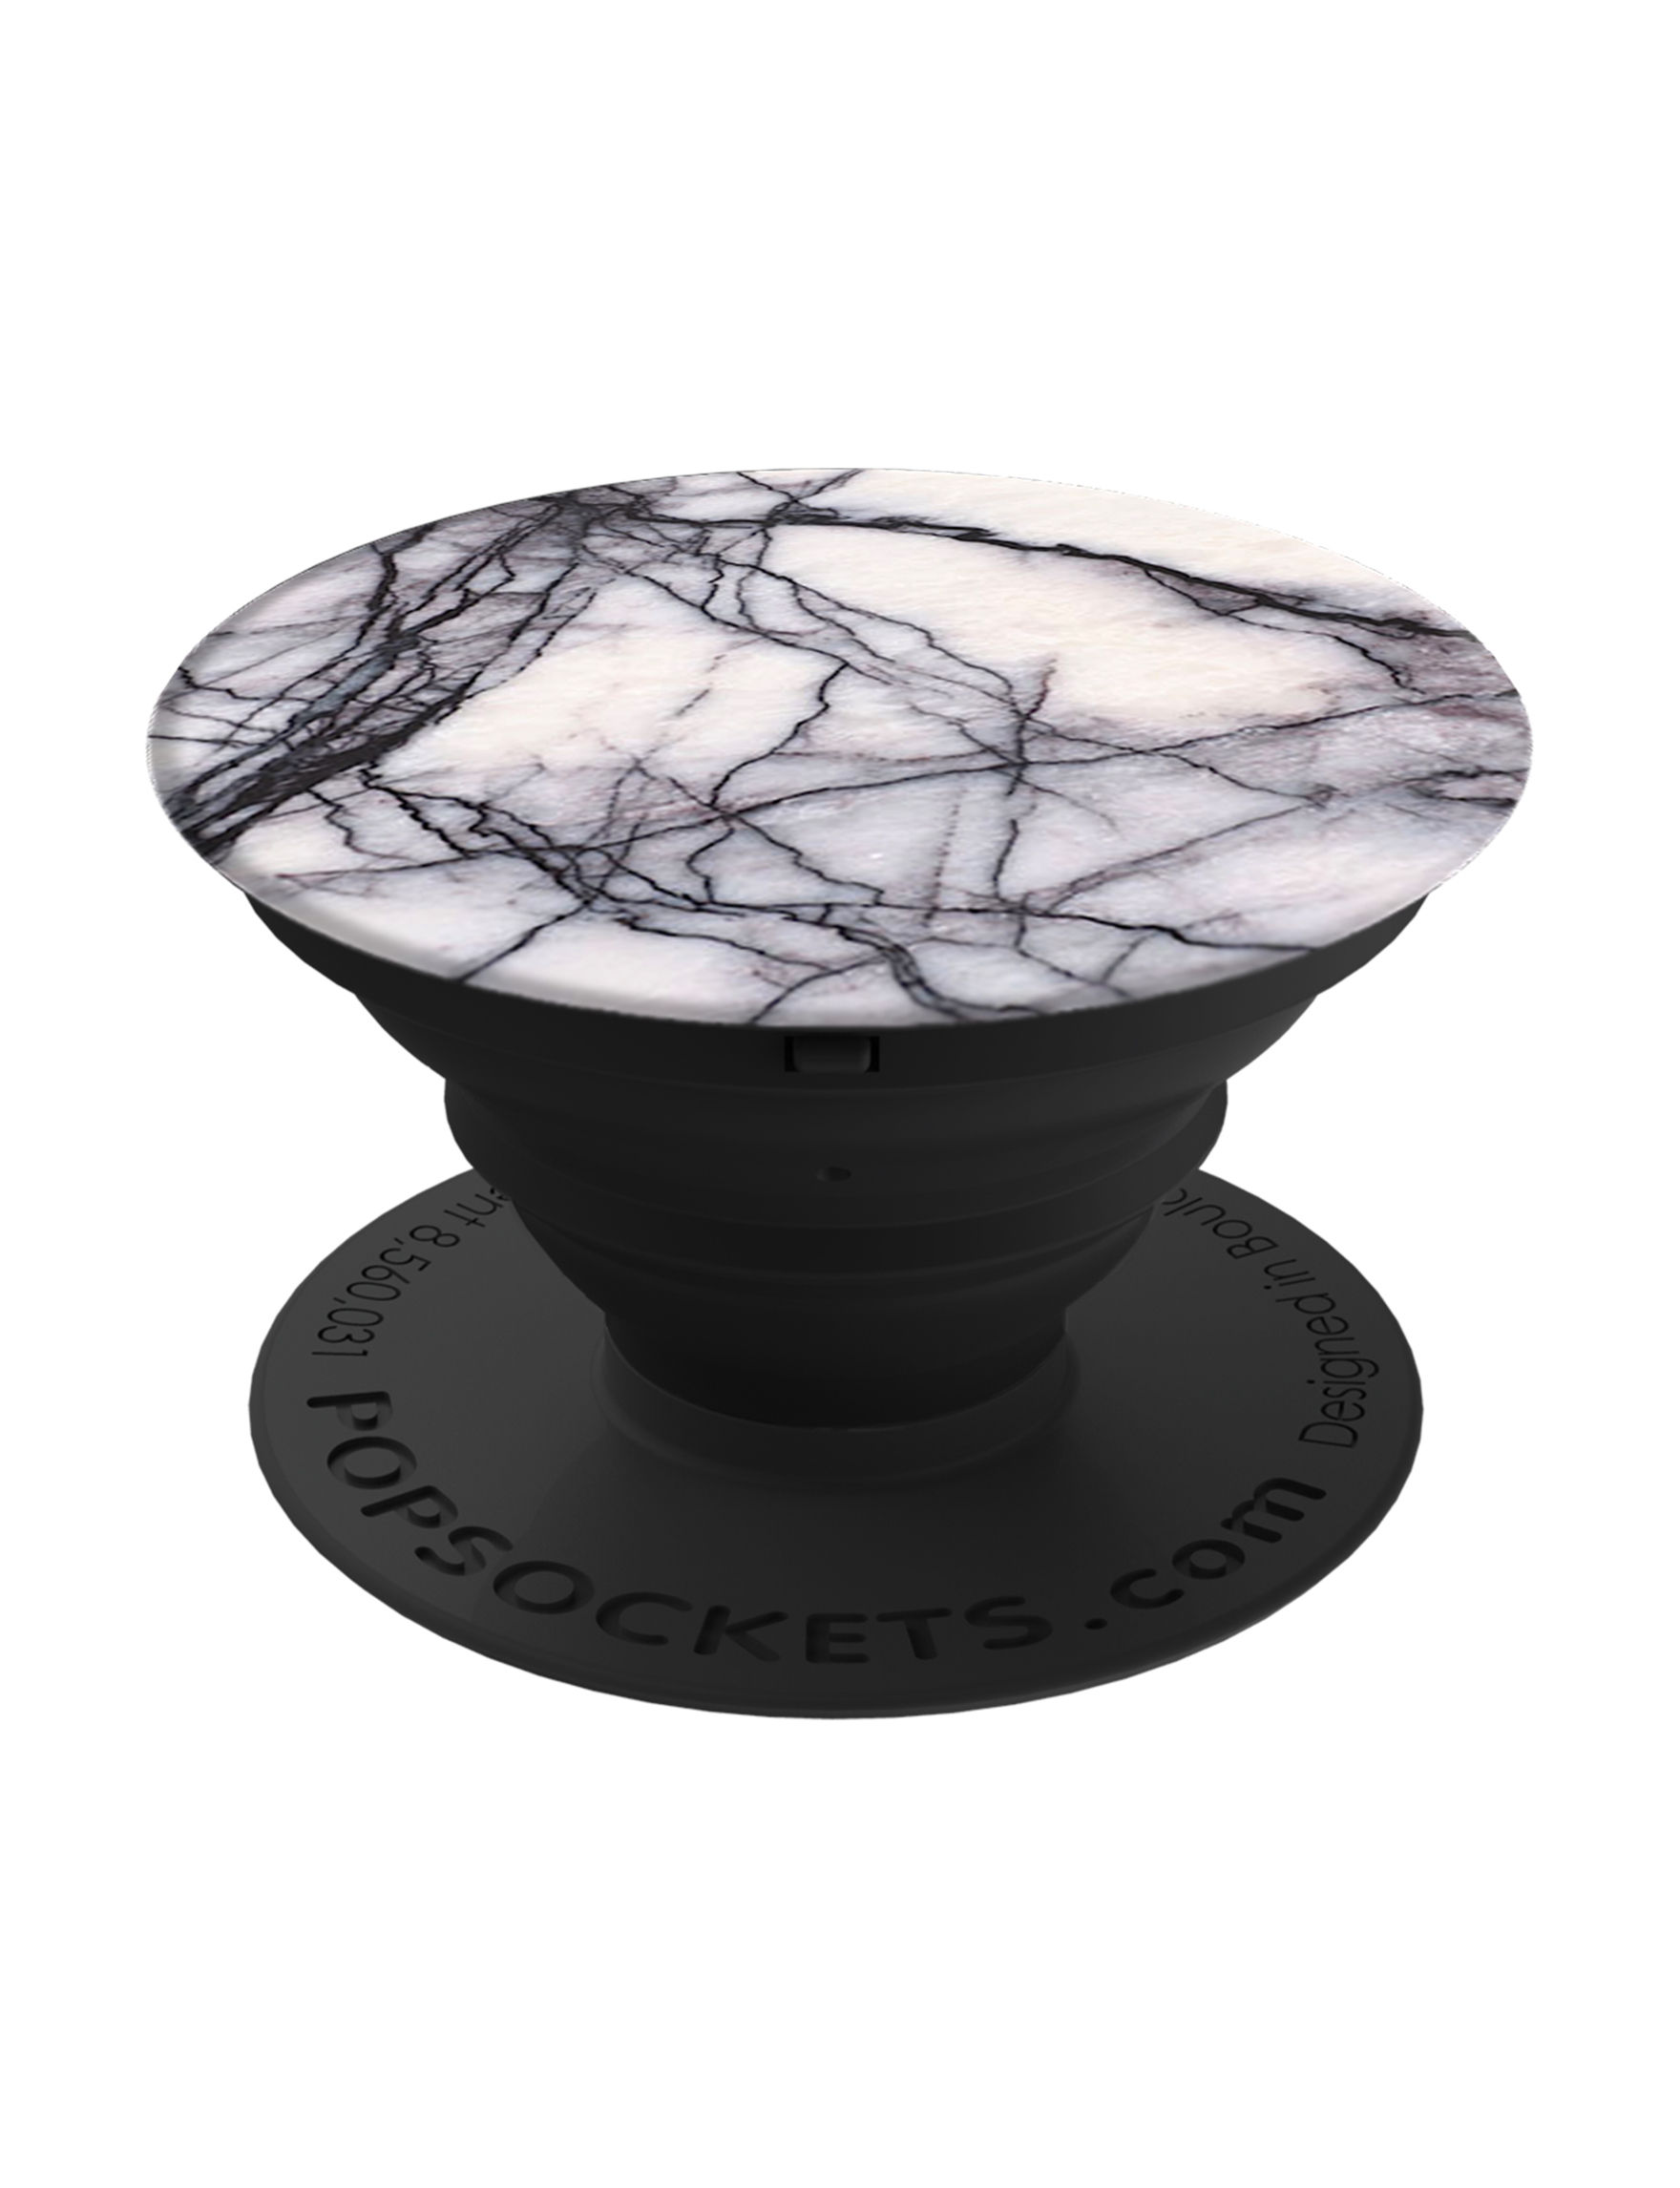 Popsockets Black / White Mounts & Stands Tech Accessories